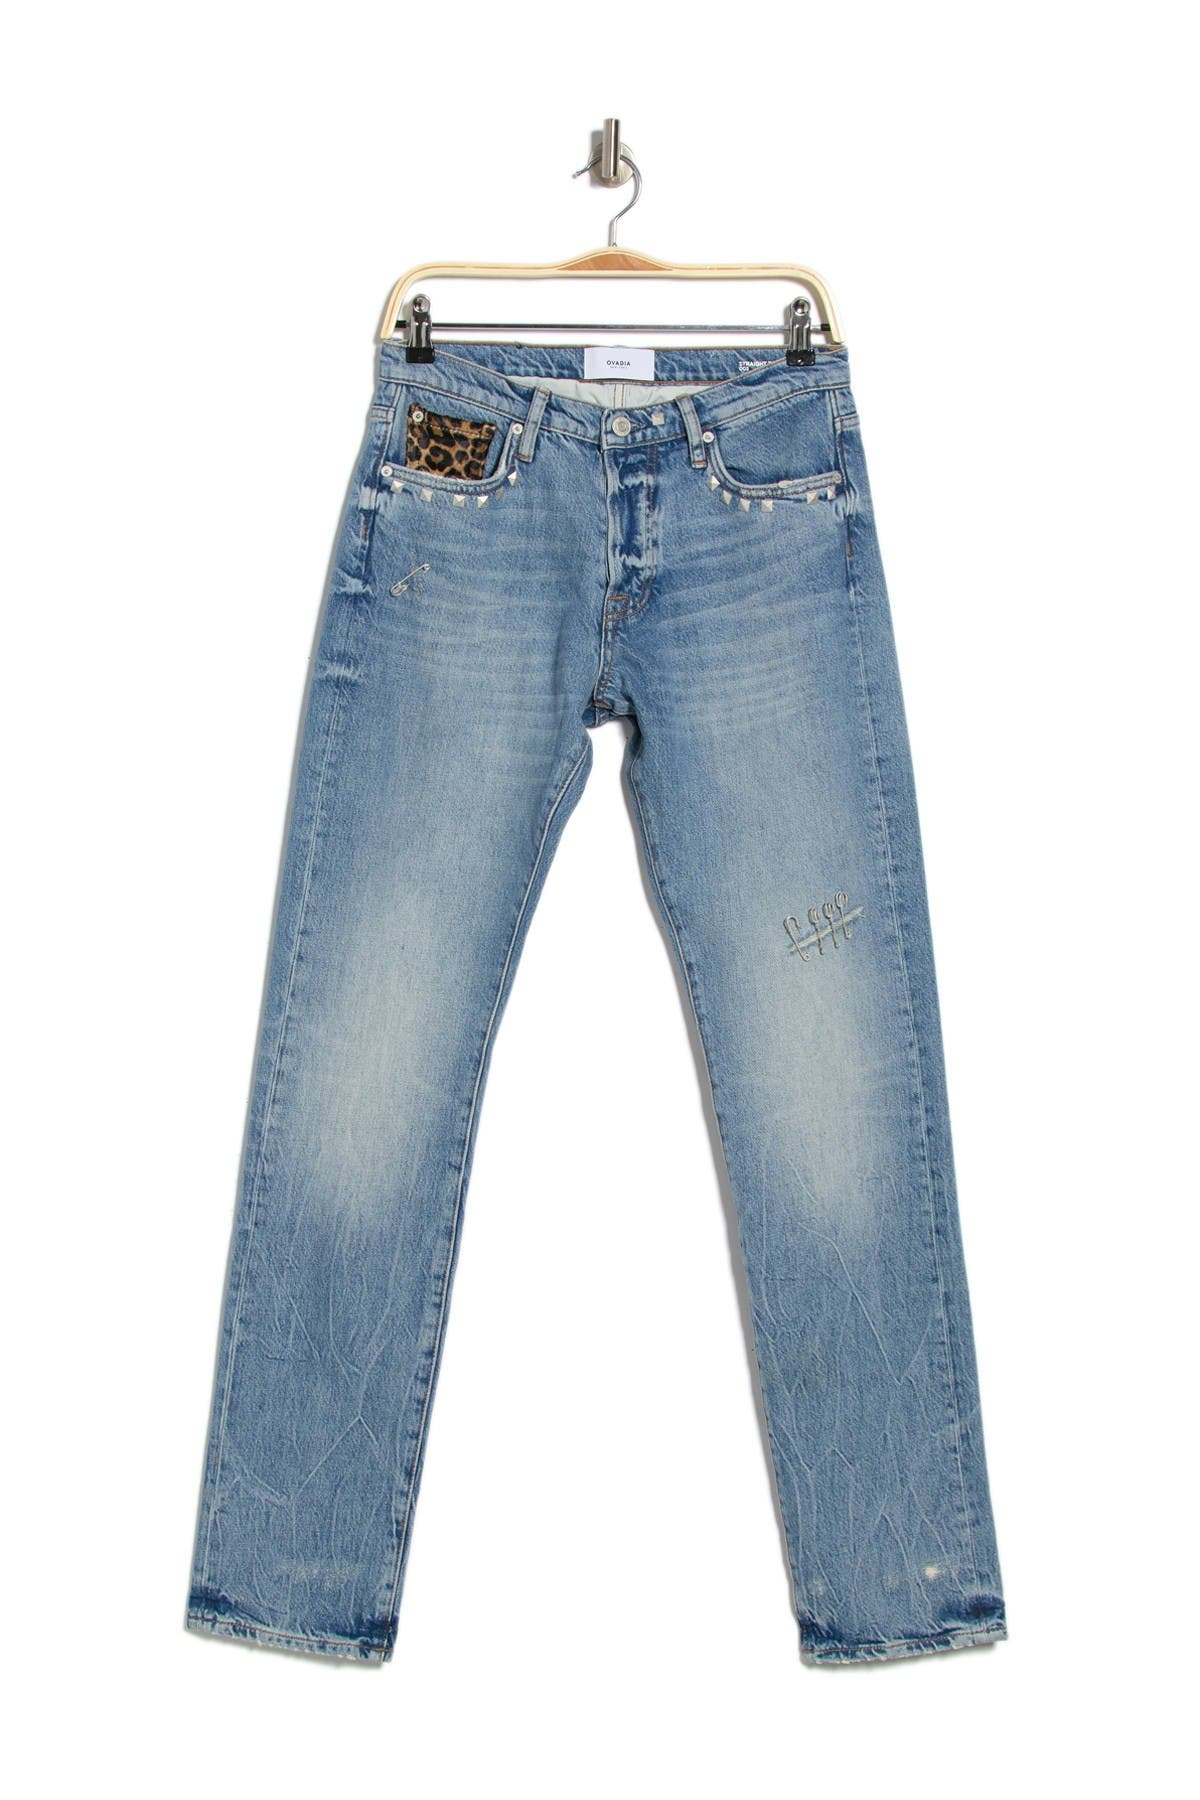 Image of OVADIA AND SONS Straight Tapered Leg Jeans